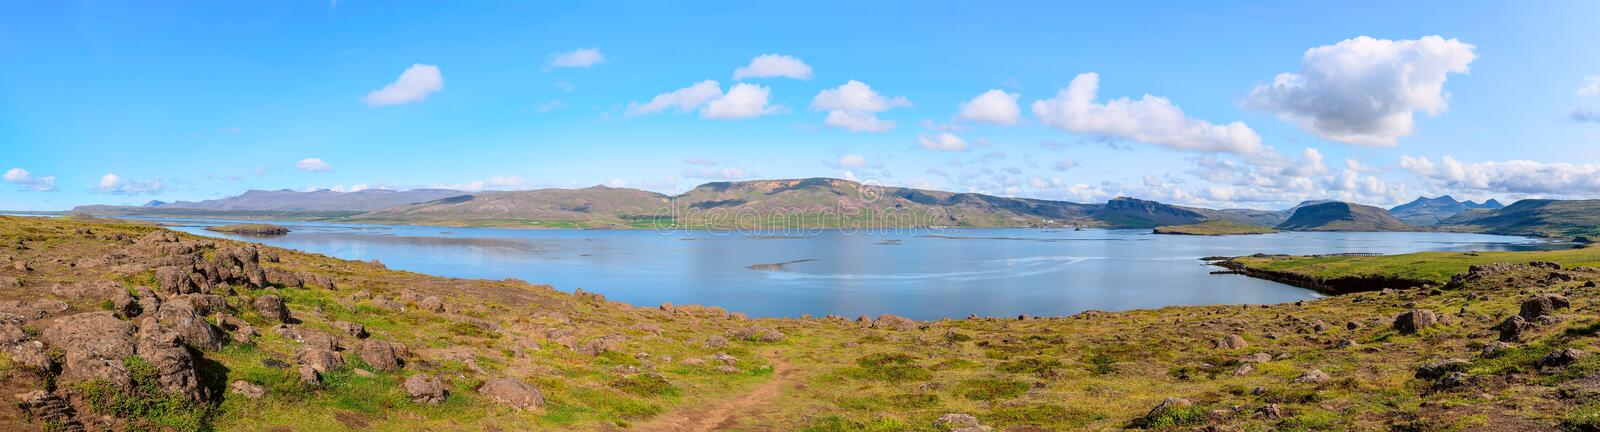 Calm lake in iceland landscape royalty free stock photos